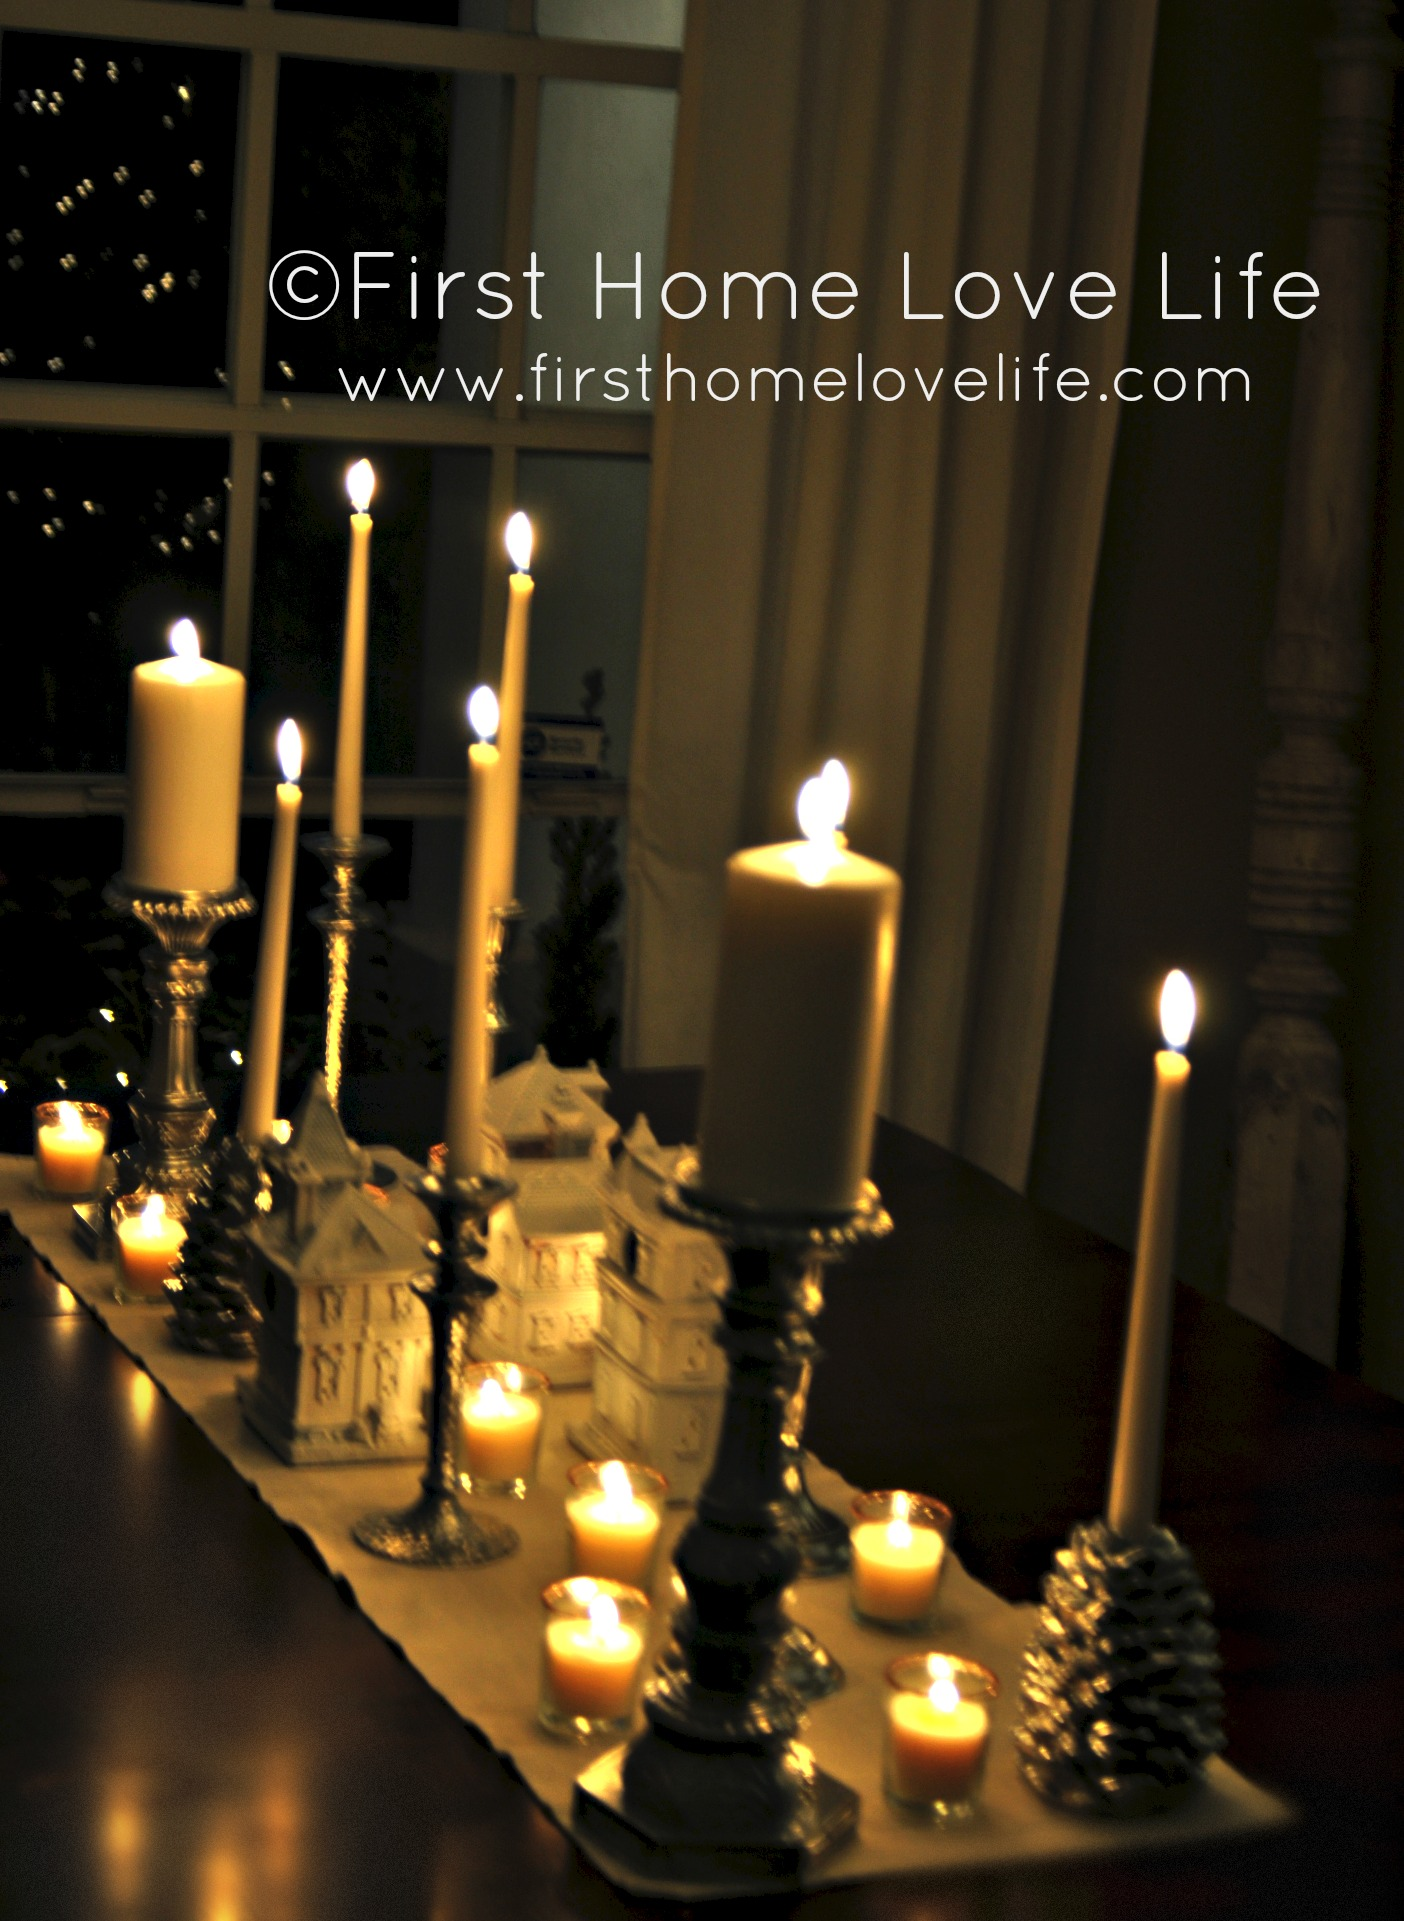 Quot Silver Bells Quot Inspired Candlescape Table First Home Love Life